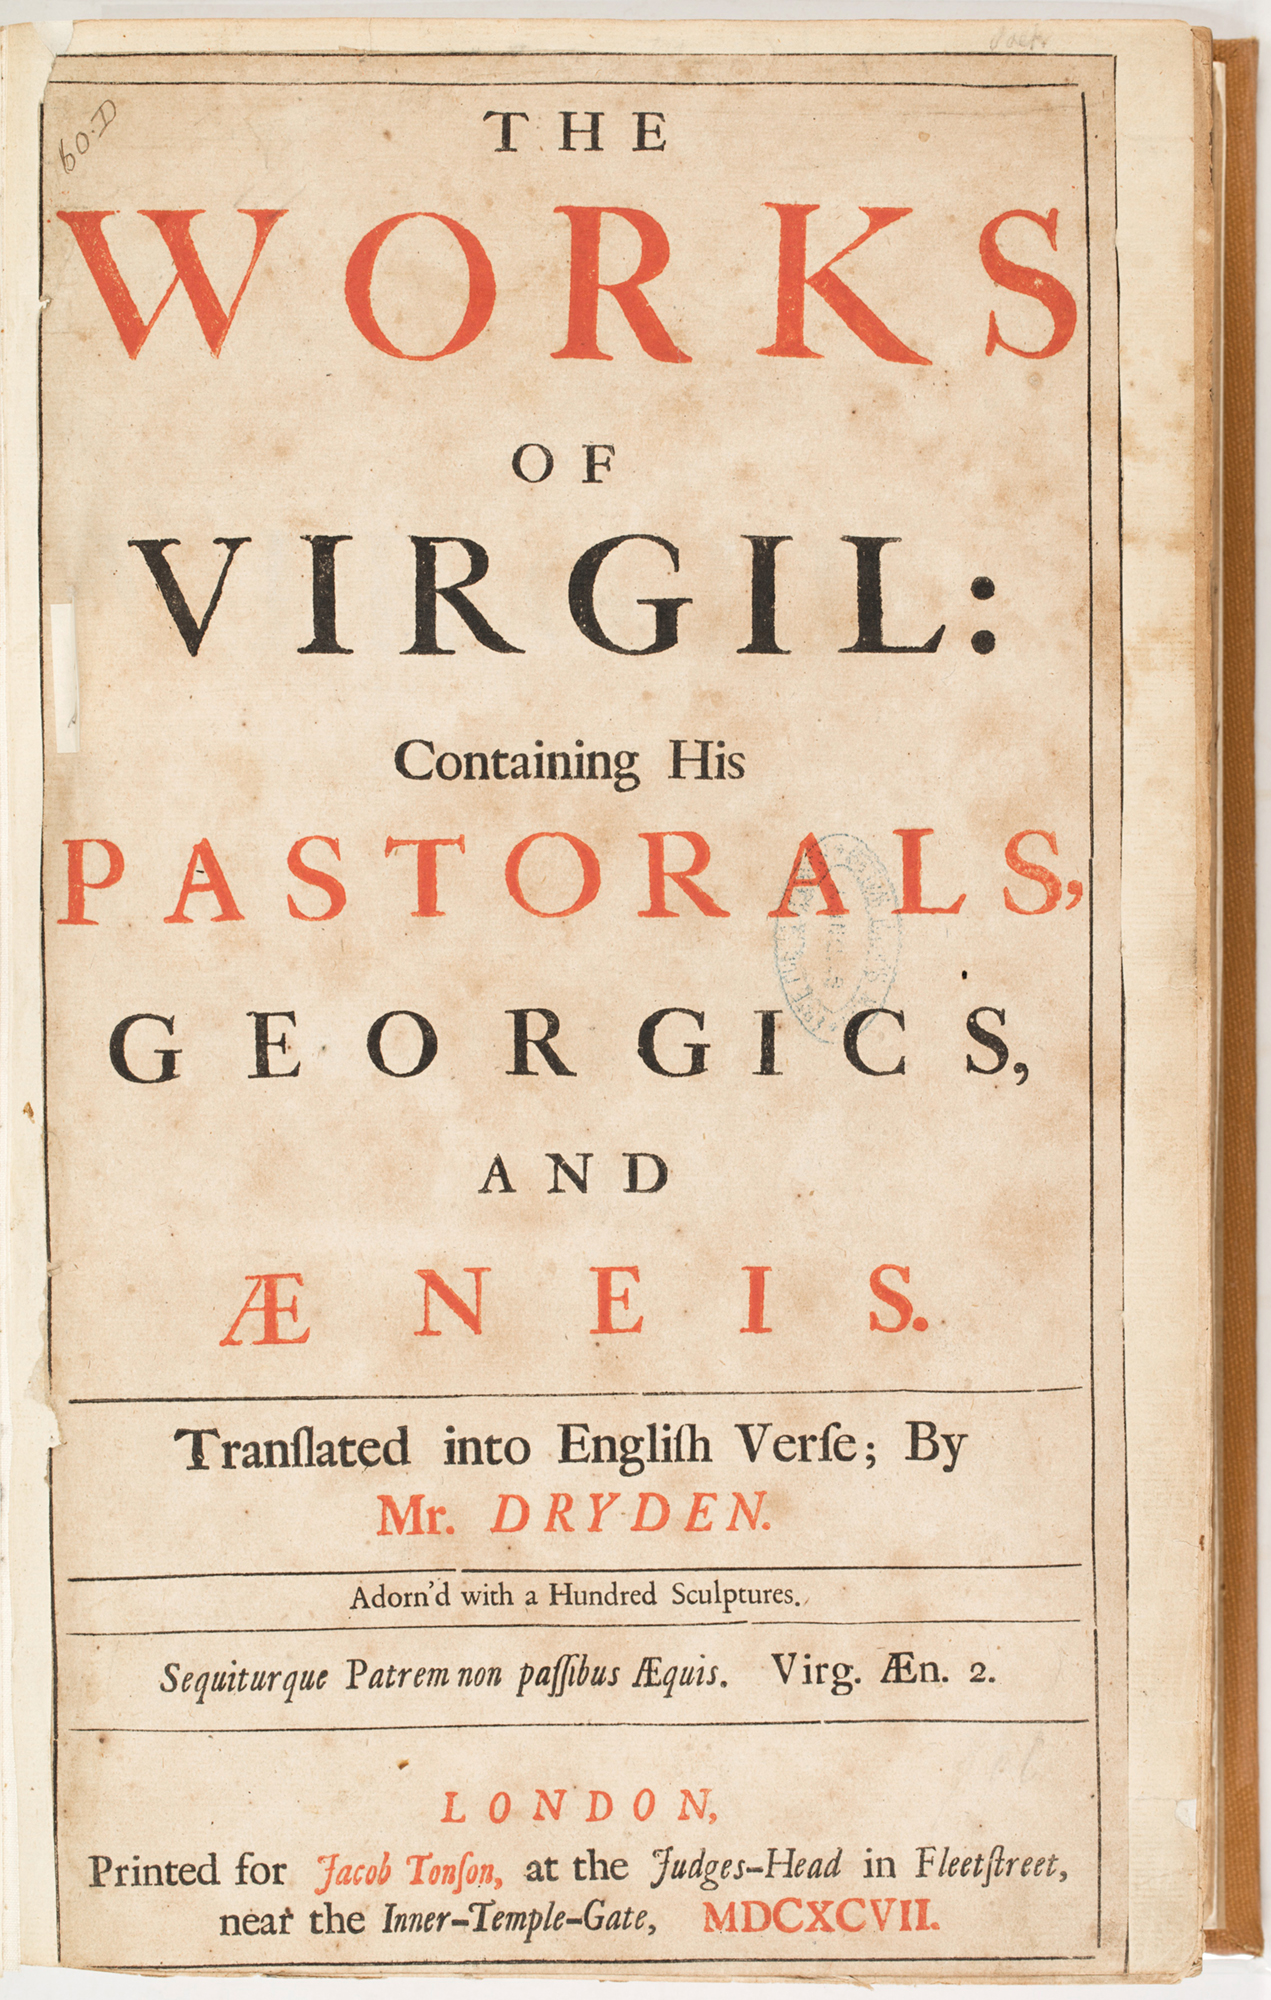 The works of Virgil: containing his Pastorals, Georgics, and Aeneis, 1697, by John Dryden